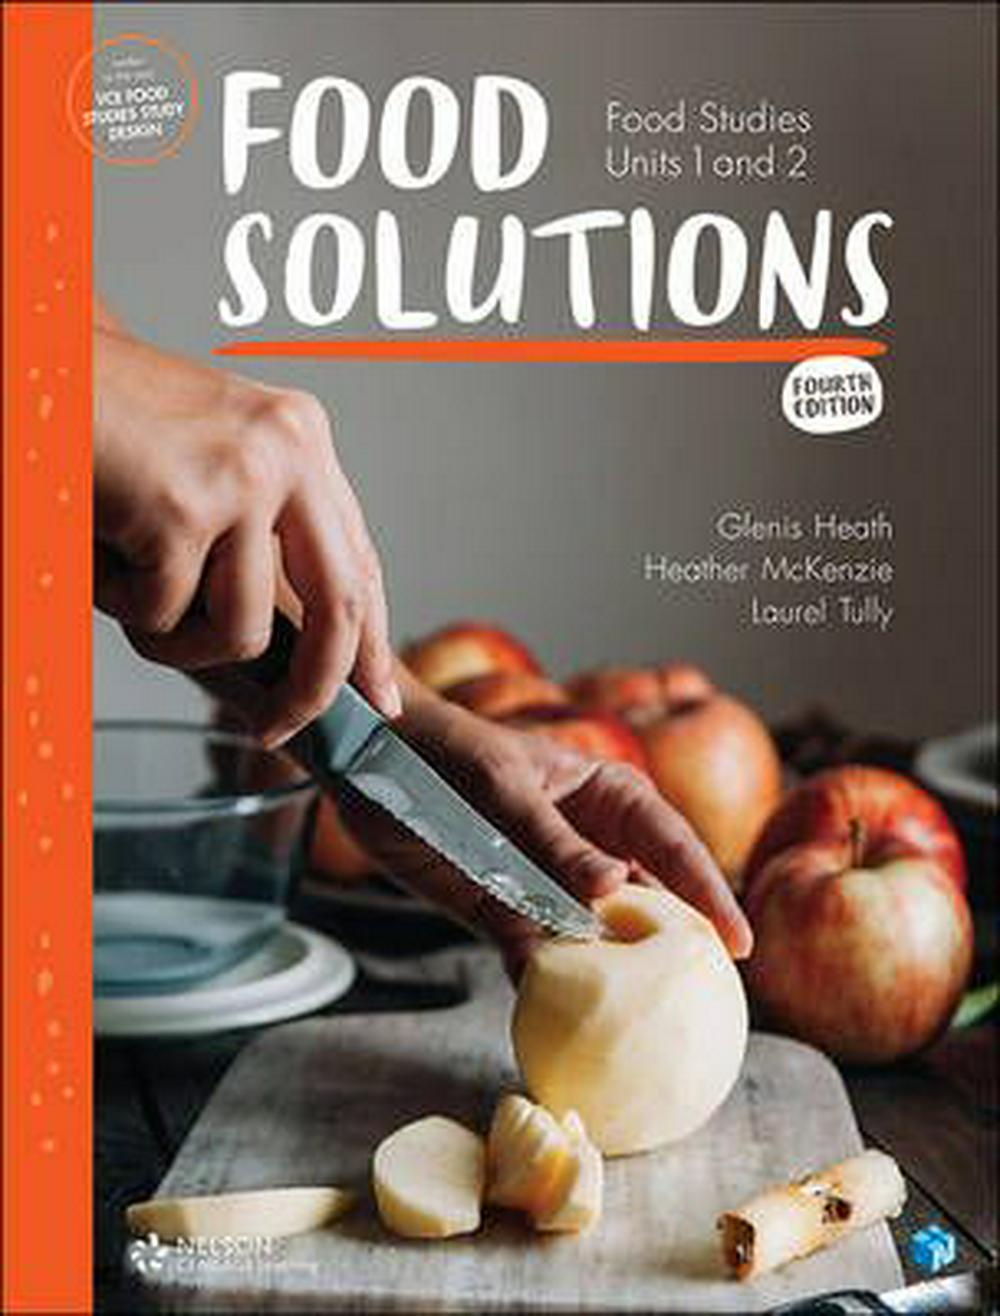 Food Solutions: Food Studies Units 1 & 2 Fourth Edition